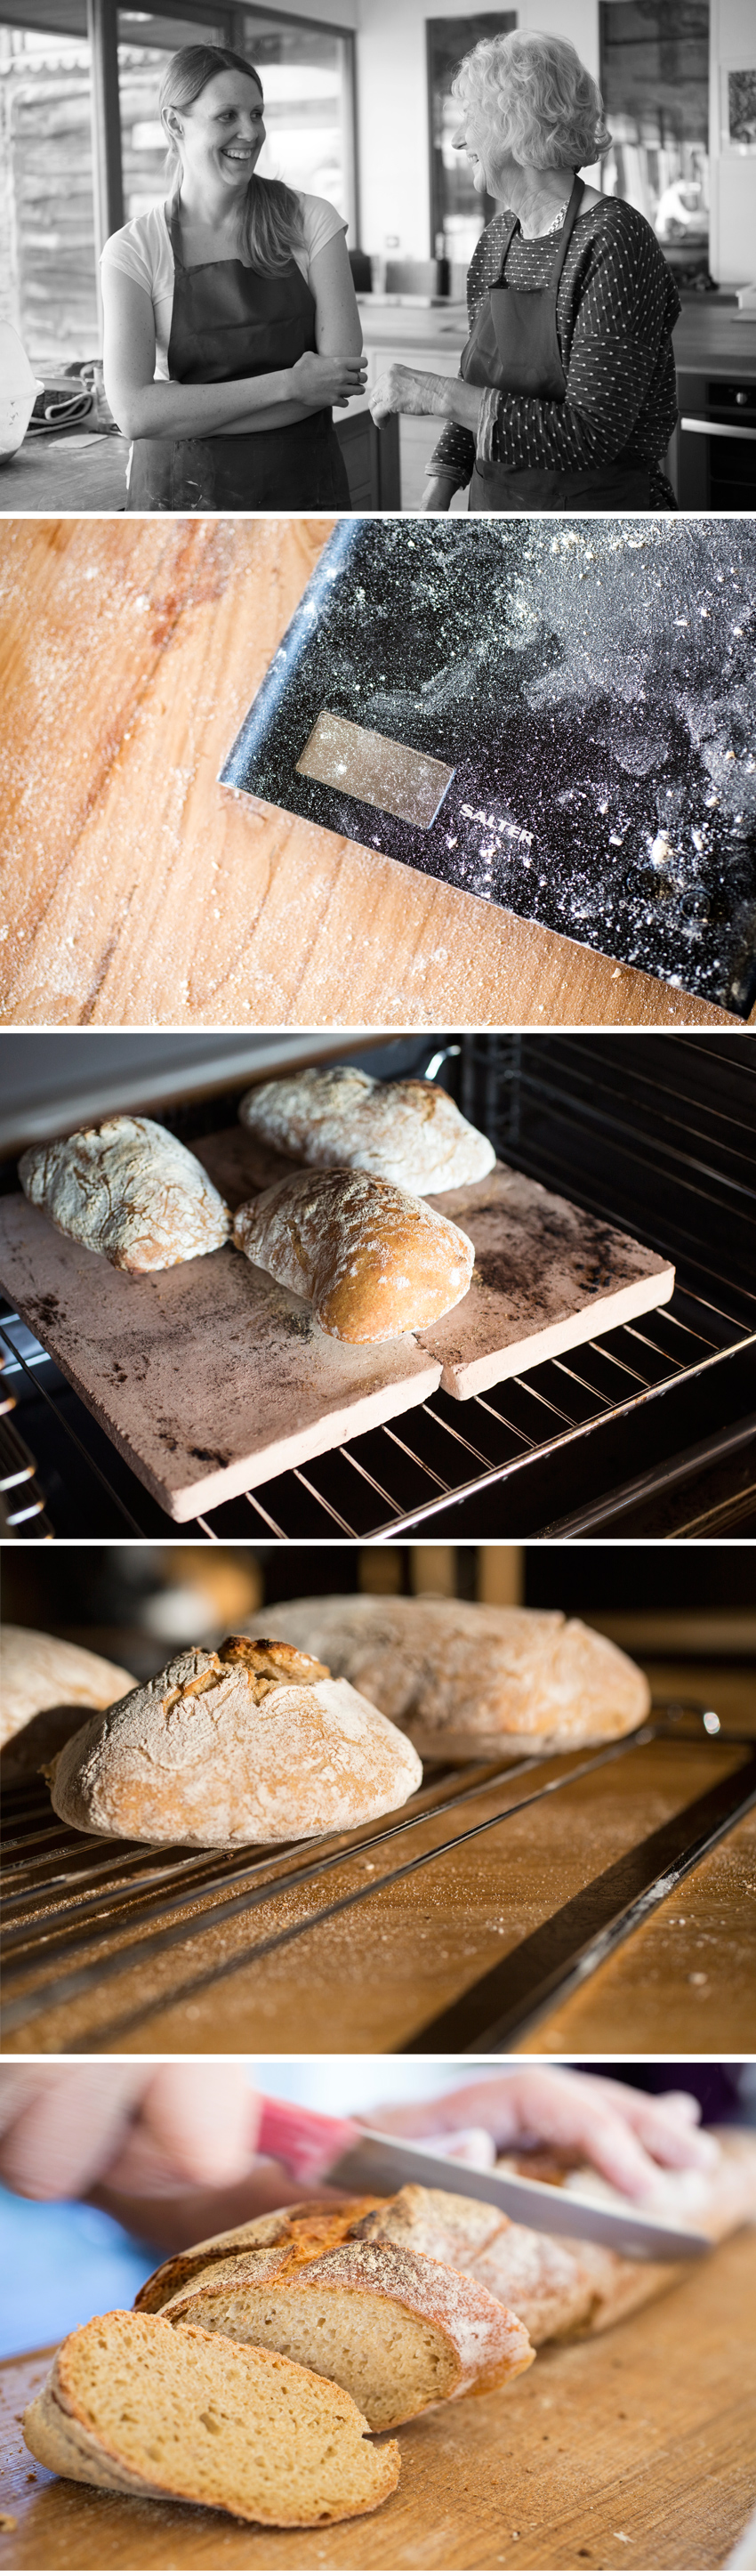 Food Photographer monmouthshire bread making 4